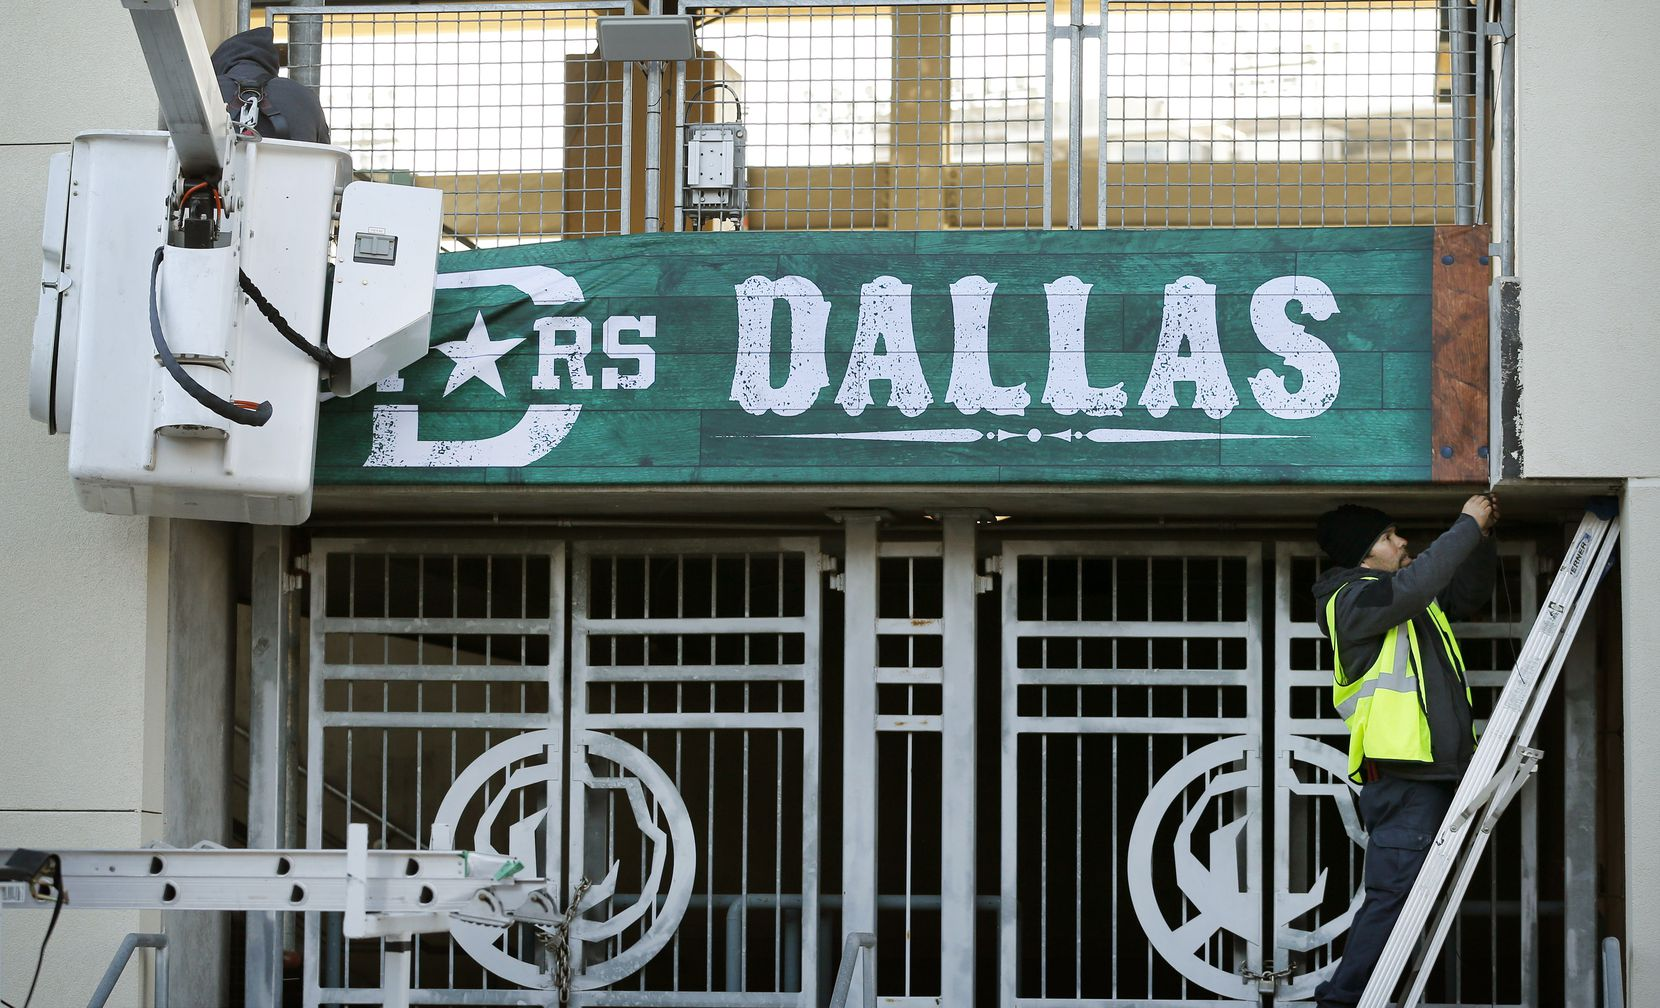 Edgar Pena (right) and Giovani Morales hang a Dallas Stars banner outside the Cotton Bowl in preparation for the New Year's Day Winter Classic hockey game at Fair Park in Dallas, Tuesday, December 17, 2019. The annual game will pit the Dallas Stars against the Nashville Predators.